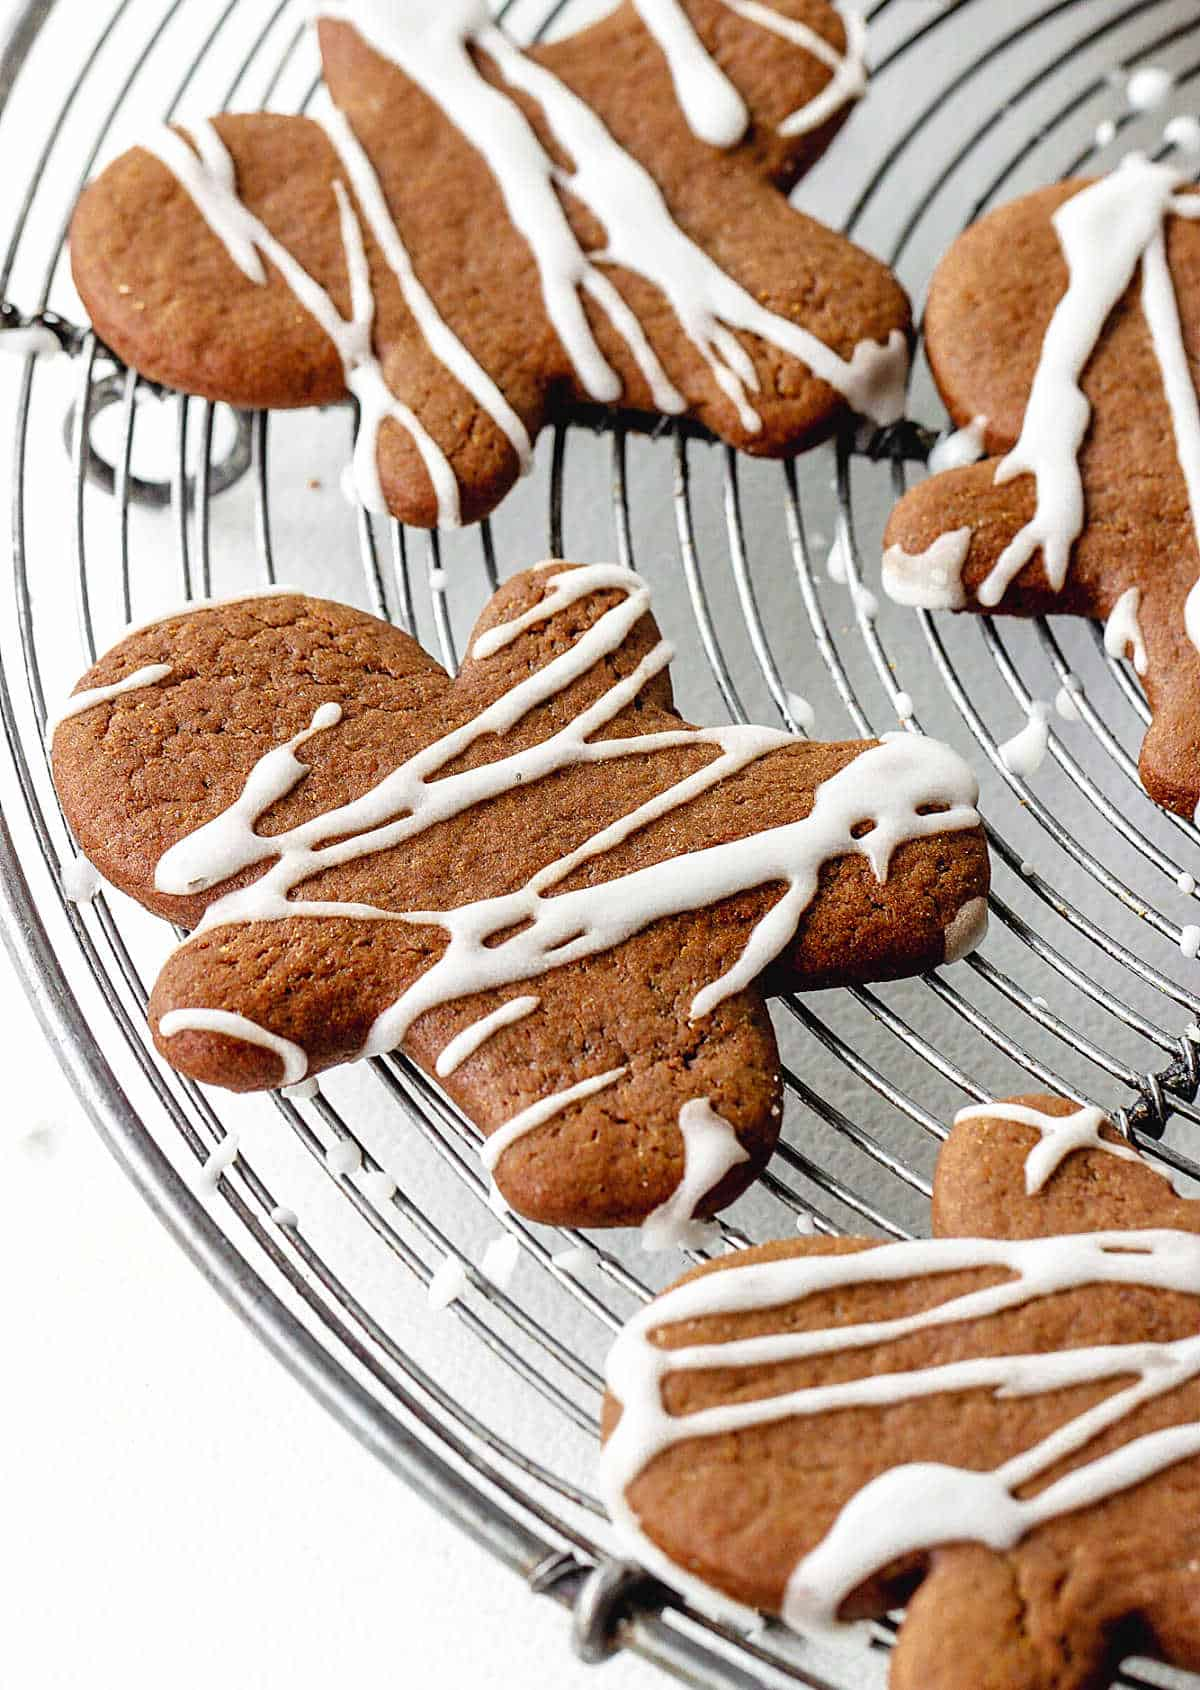 Several gingerbread men cookies with icing on a round wire rack